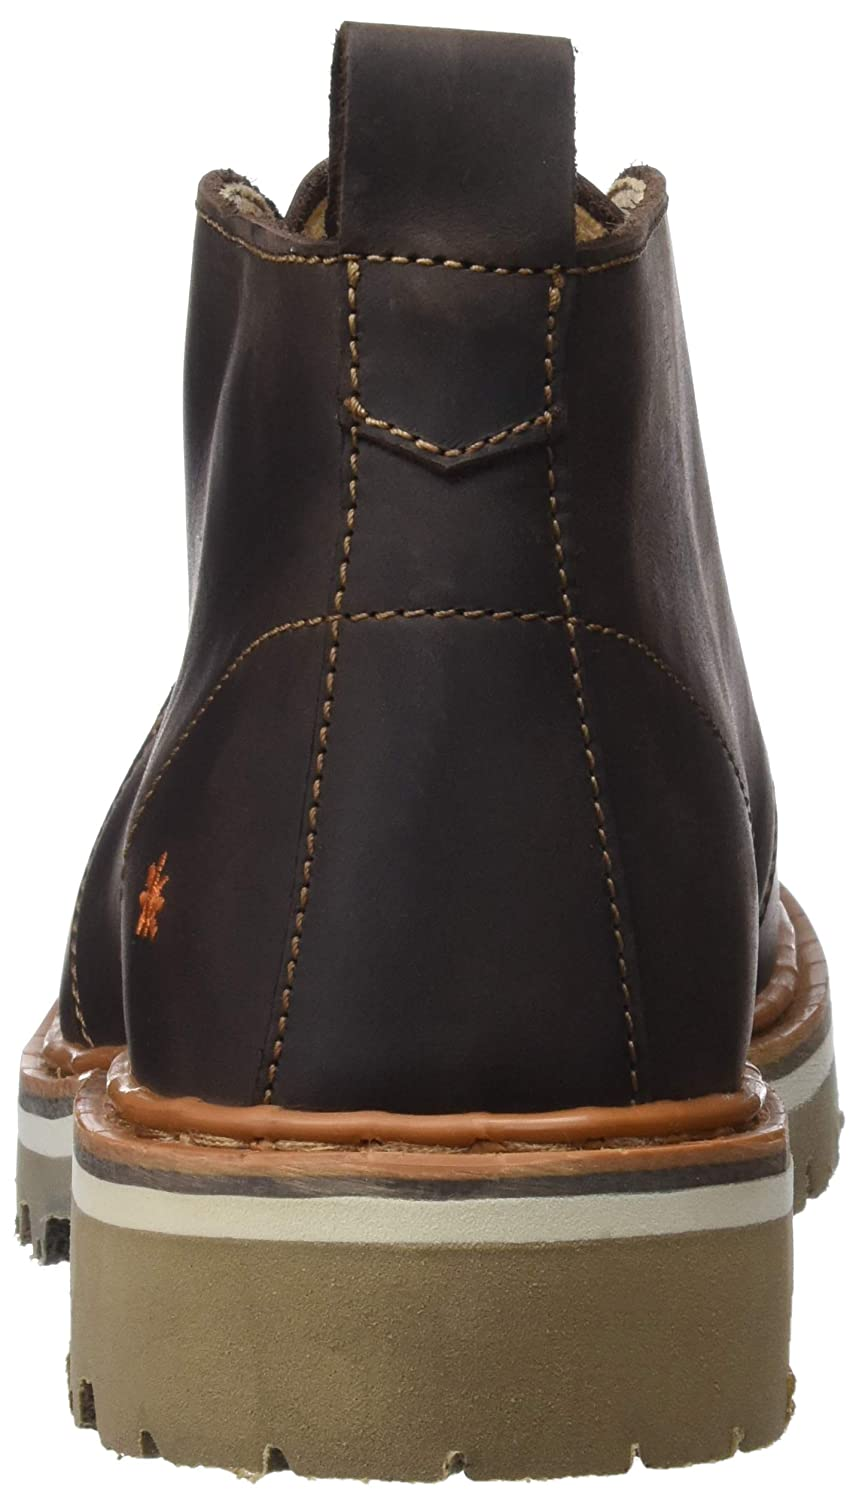 Art Herren (Brown Rustic Kurzschaft Stiefel Braun (Brown Herren Brown) 253202